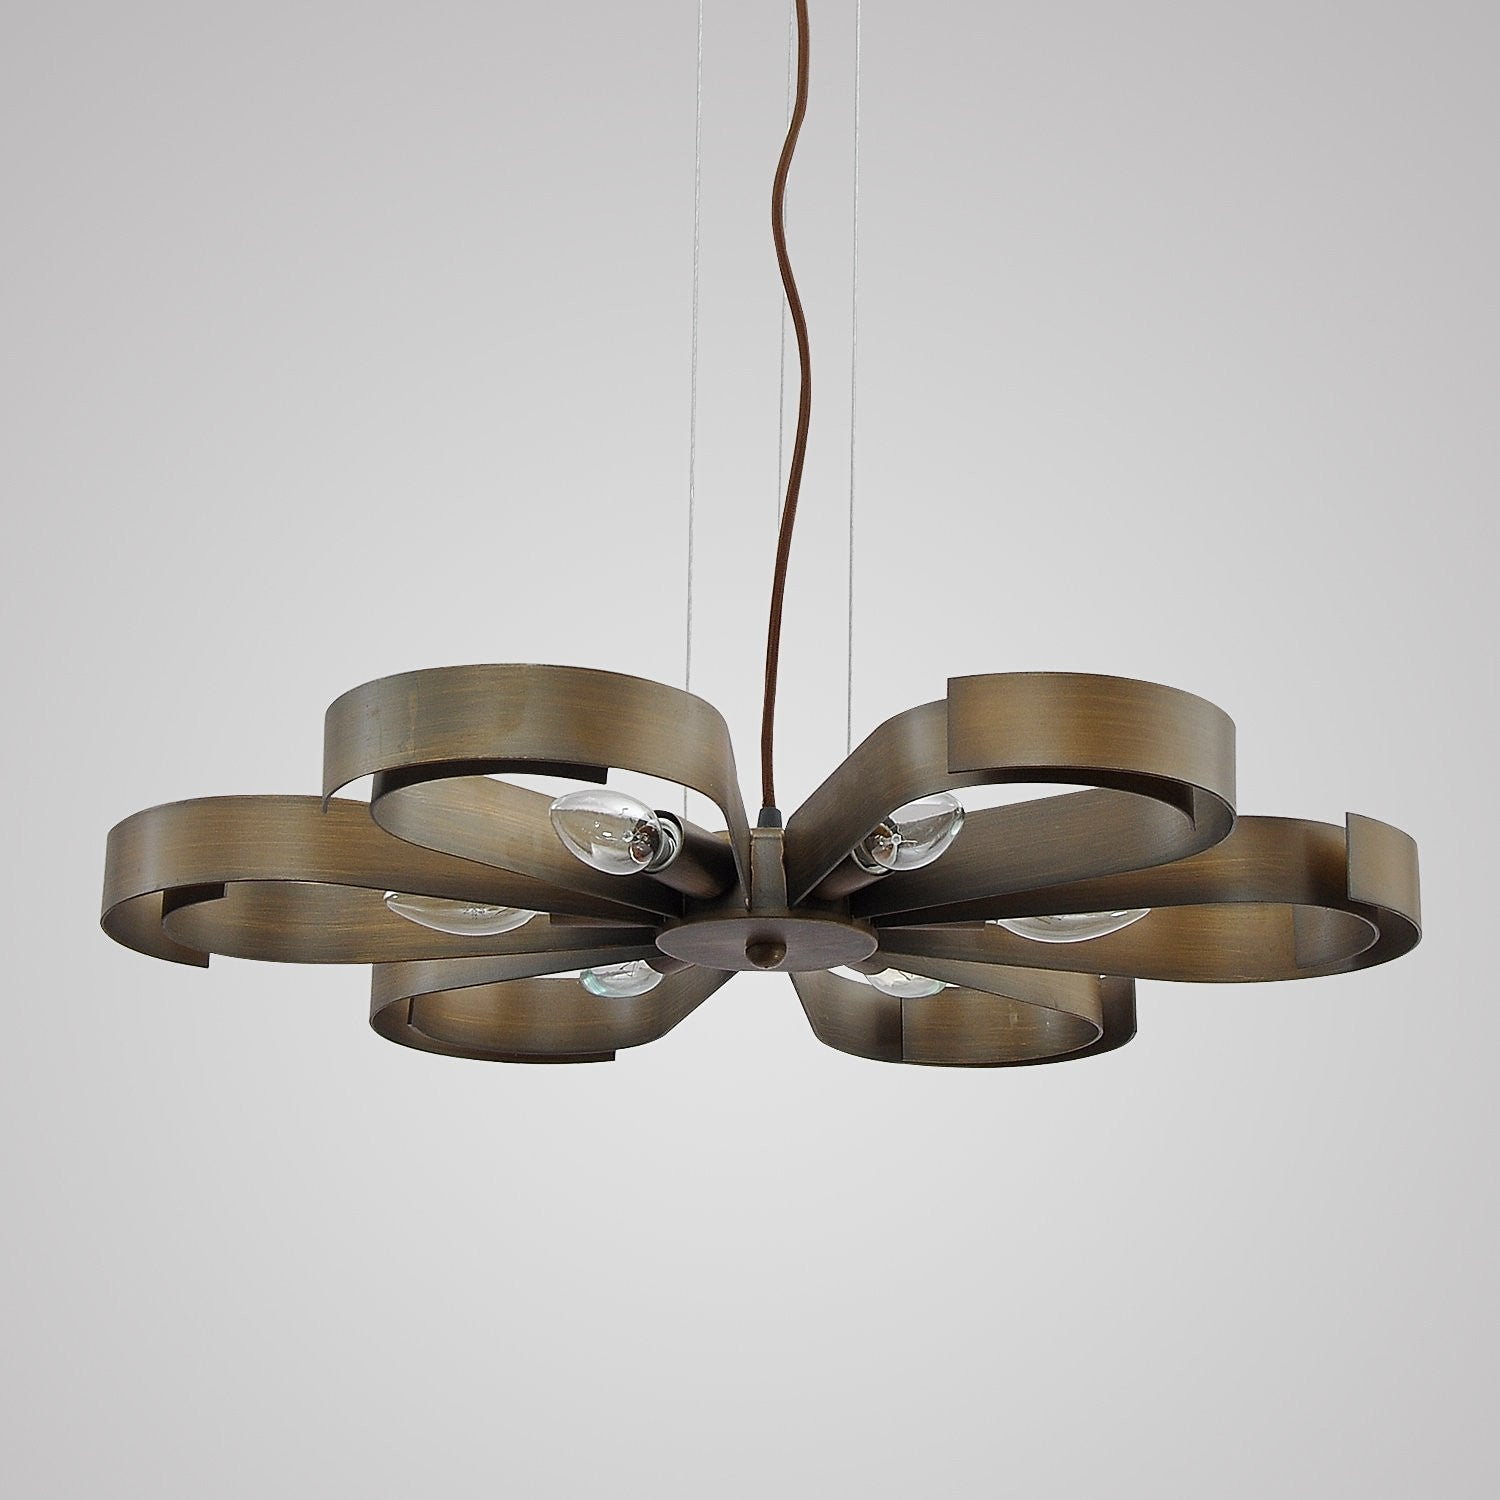 Unitary brand antique copper metal floral pendant light with 6 e12 unitary brand antique copper metal floral pendant light with 6 e12 bulb sockets 360w copper finish aloadofball Image collections